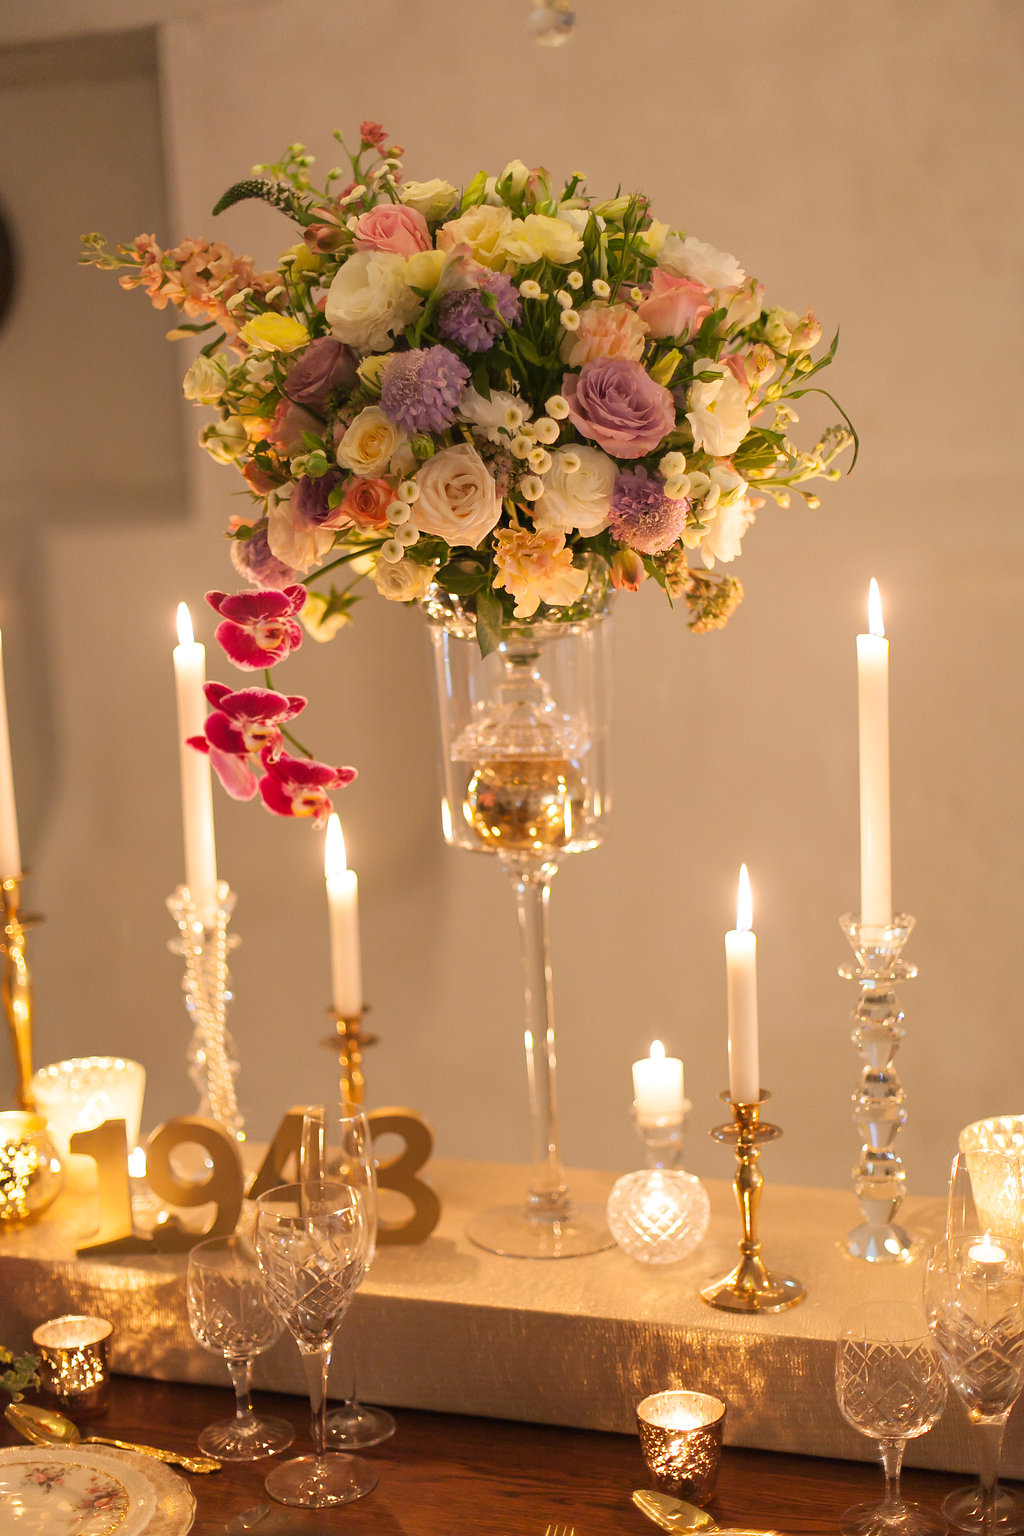 Tall Floral Centerpiece | Image: Nelani Van Zyl